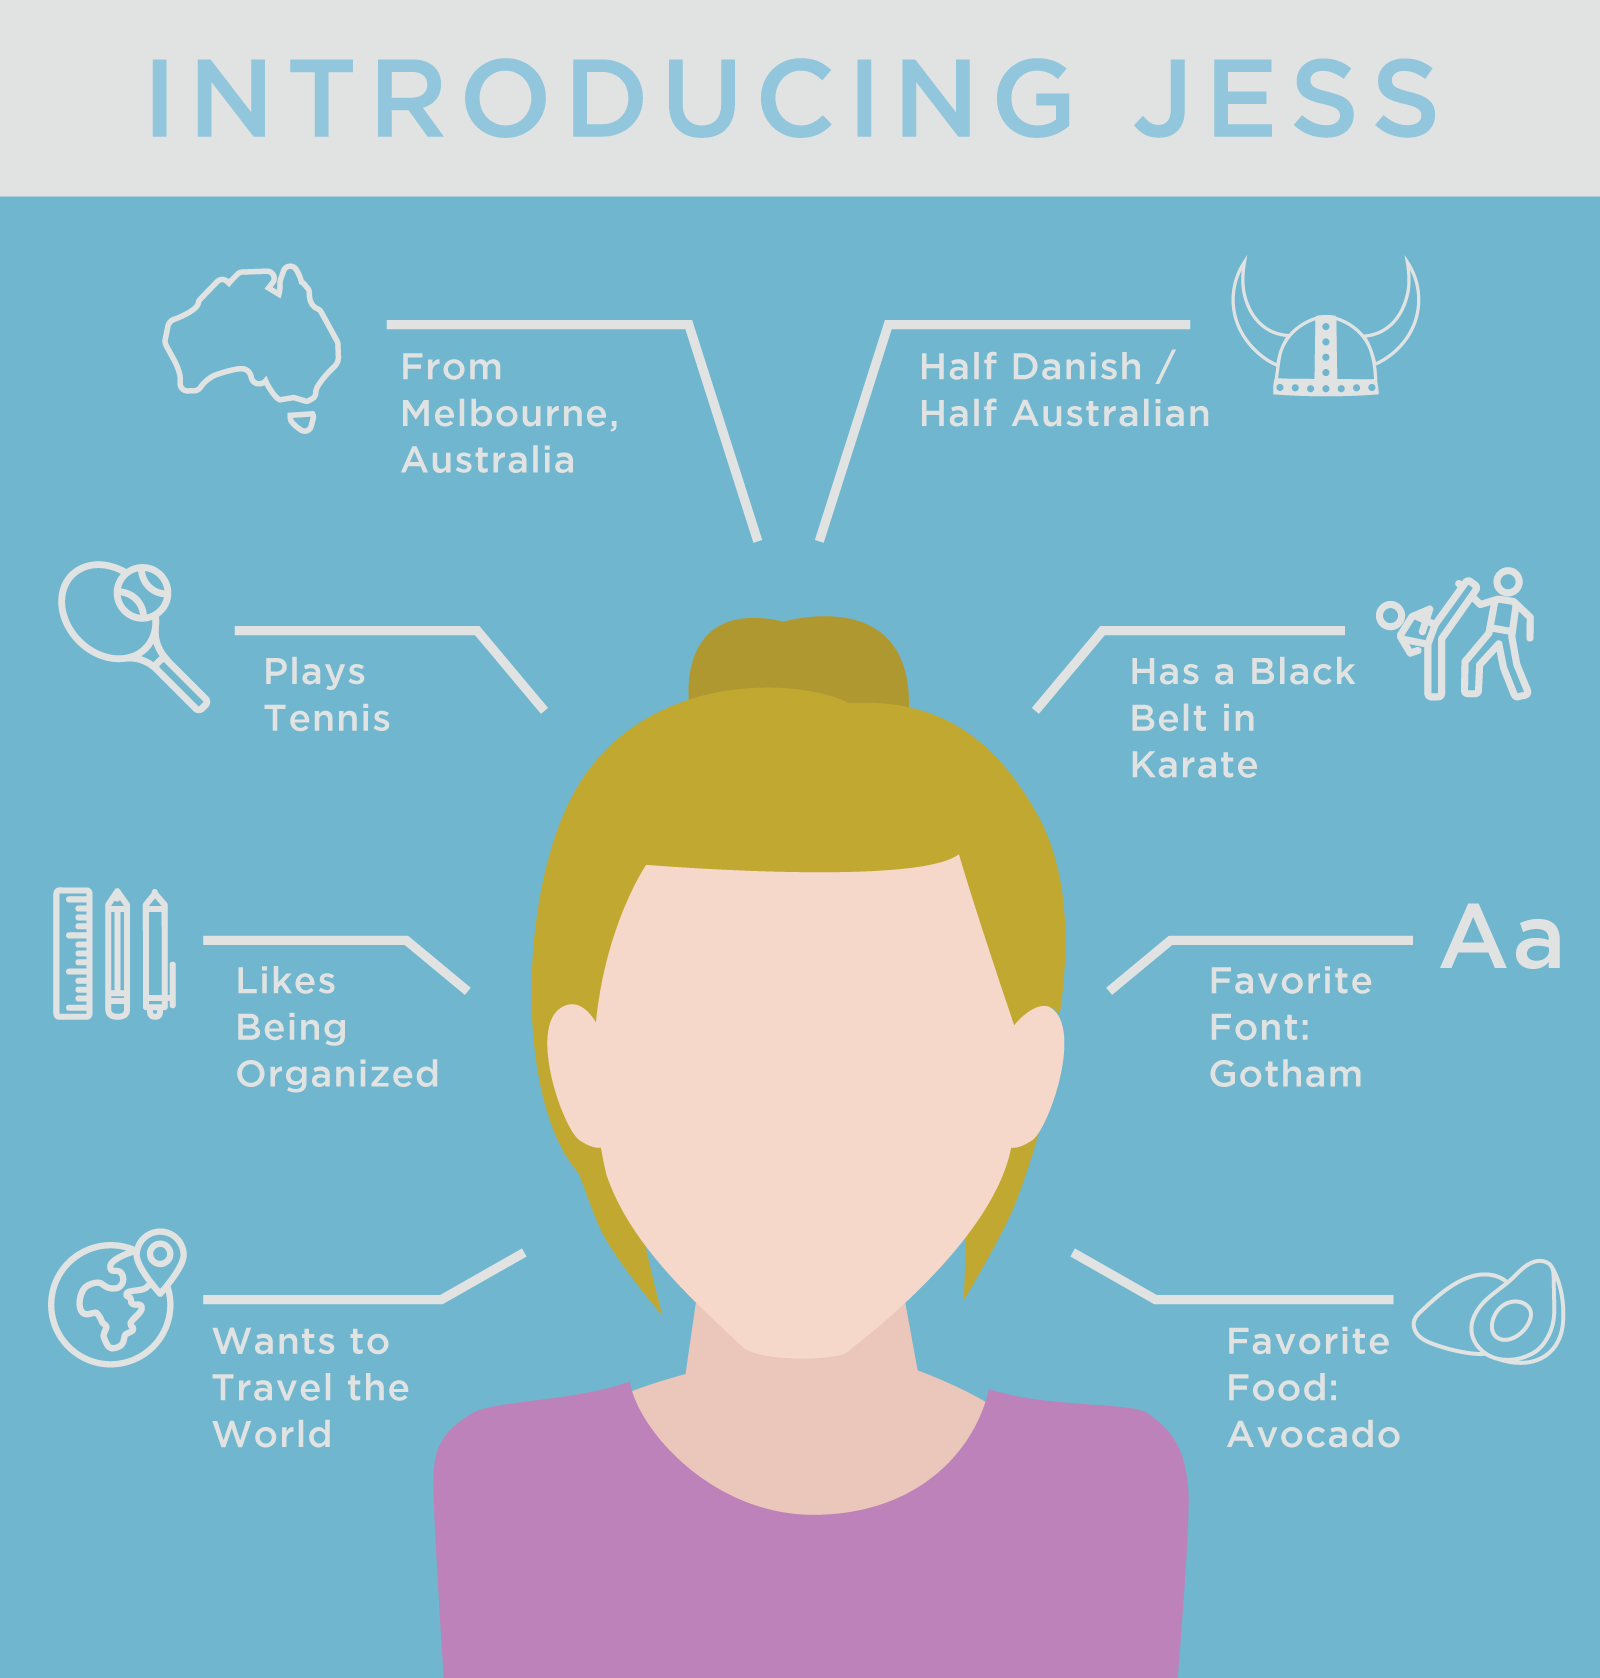 Introducing Jess